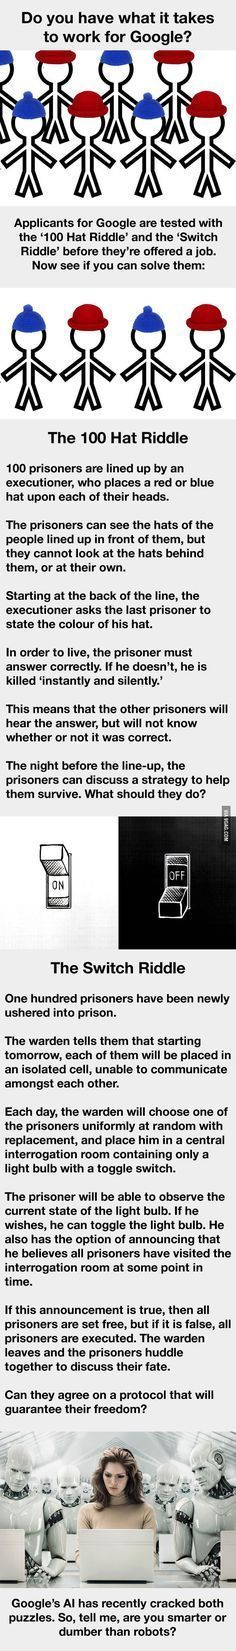 Google used these 2 riddles to spot the super smart in interviews. Can you solve them? - 9GAG